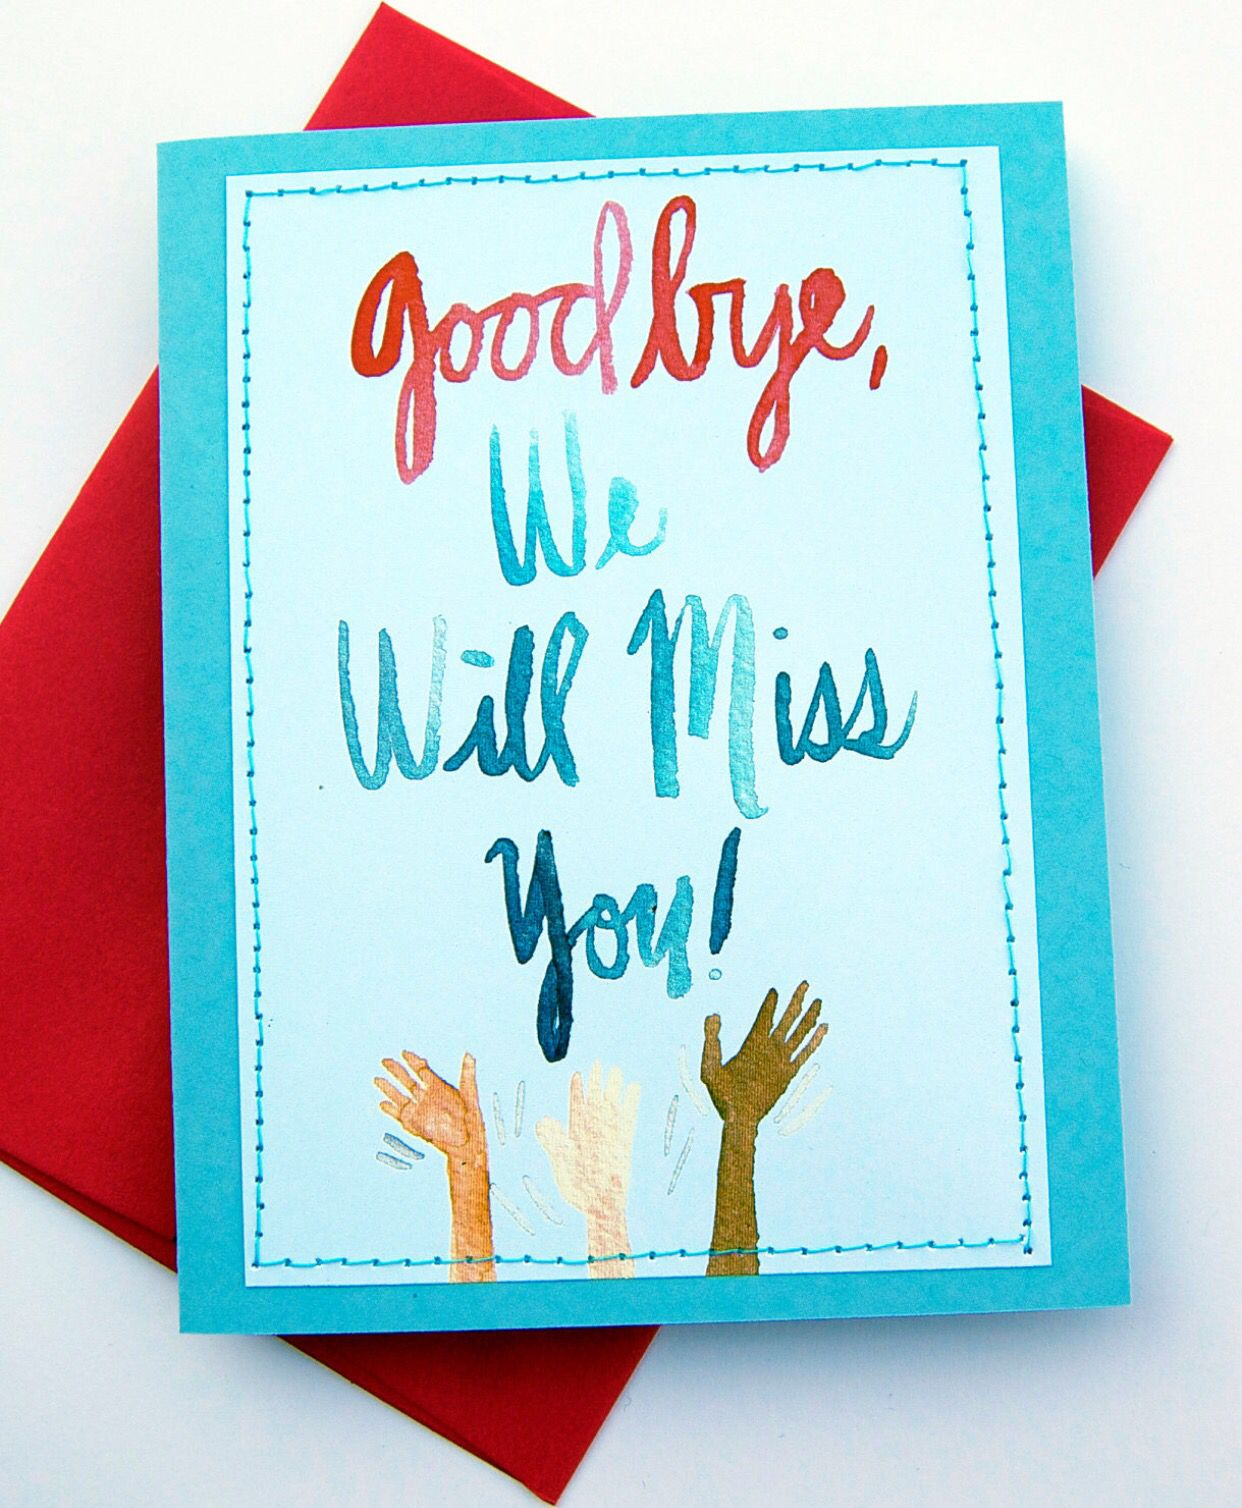 Good bye will miss you moving away ideas pinterest goodbye goodbye card for students god listen to your deepest prayer kristyandbryce Image collections